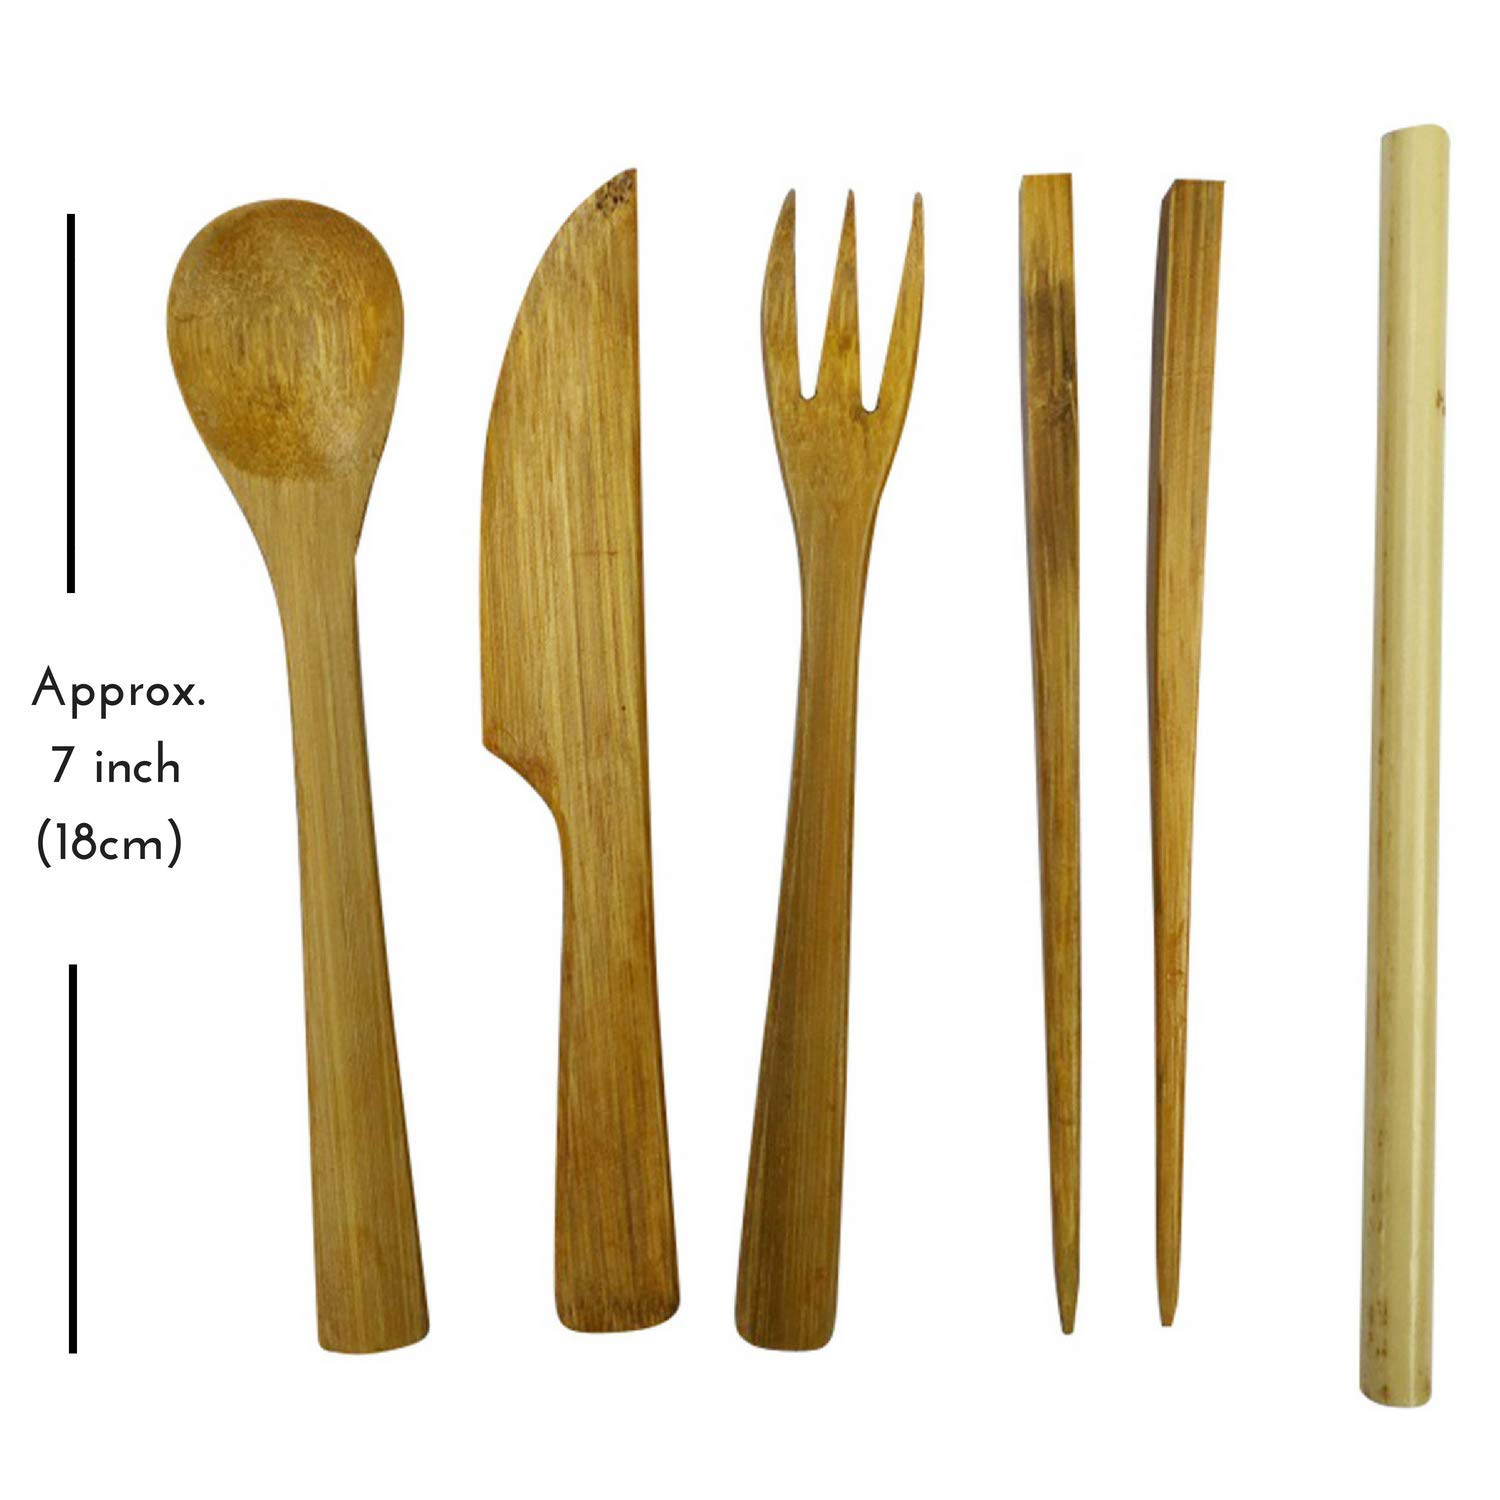 Bamboo Utensil Set in Slim Travel Pouch by Bare Vida - Premium Travel Cutlery Set With Bamboo Straw - Portable & For Traveling - Eco Friendly Gift - 100% Organic Bamboo Made in Bali by Bare Vida